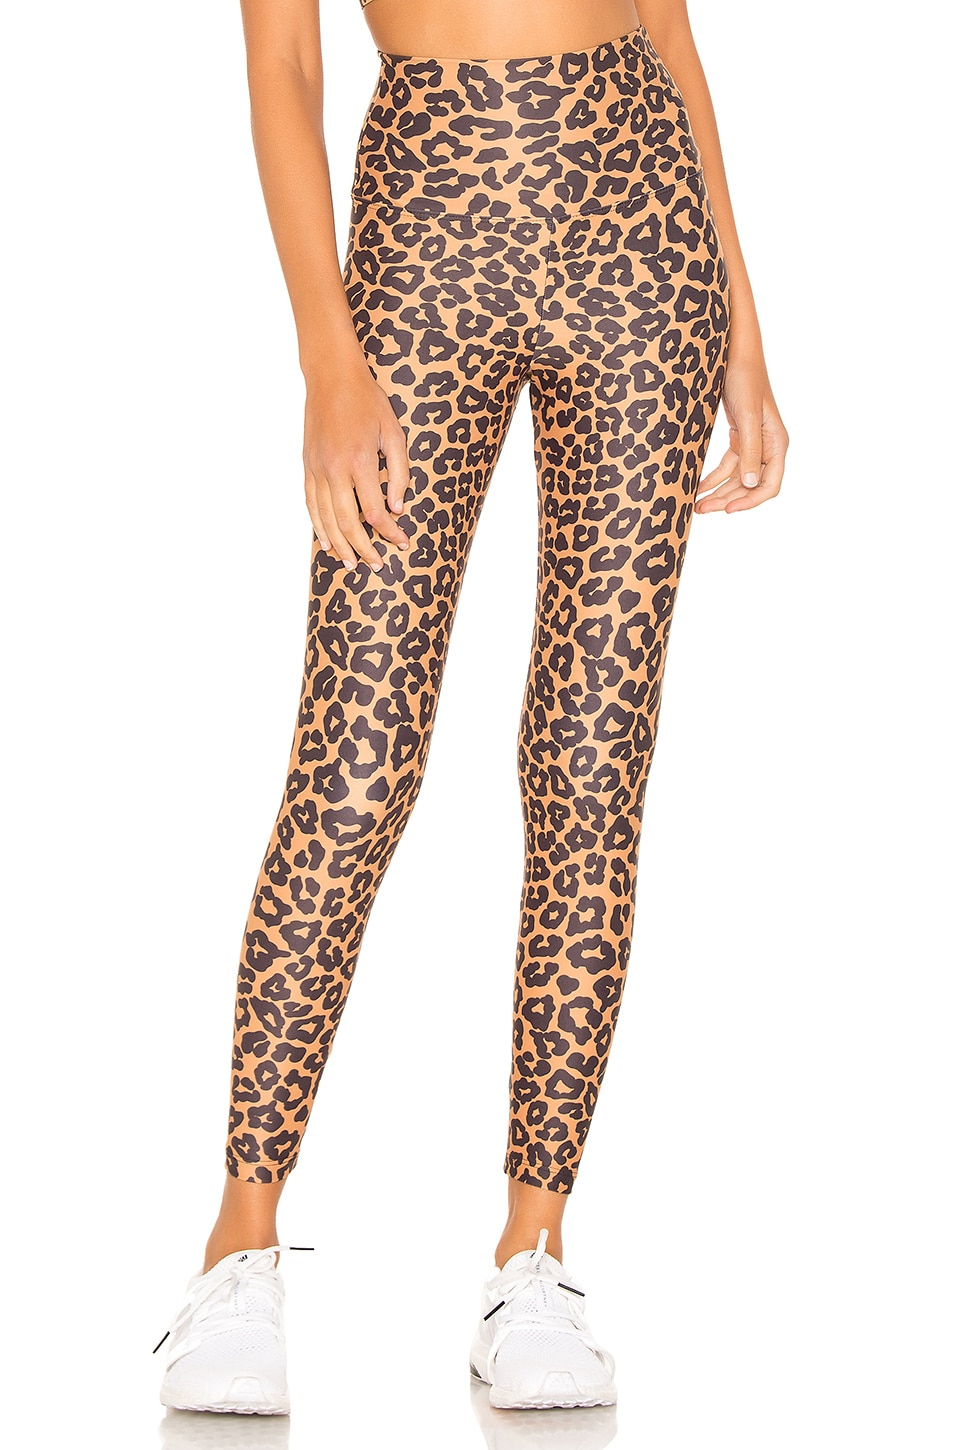 BEACH RIOT Piper Legging in Leopard